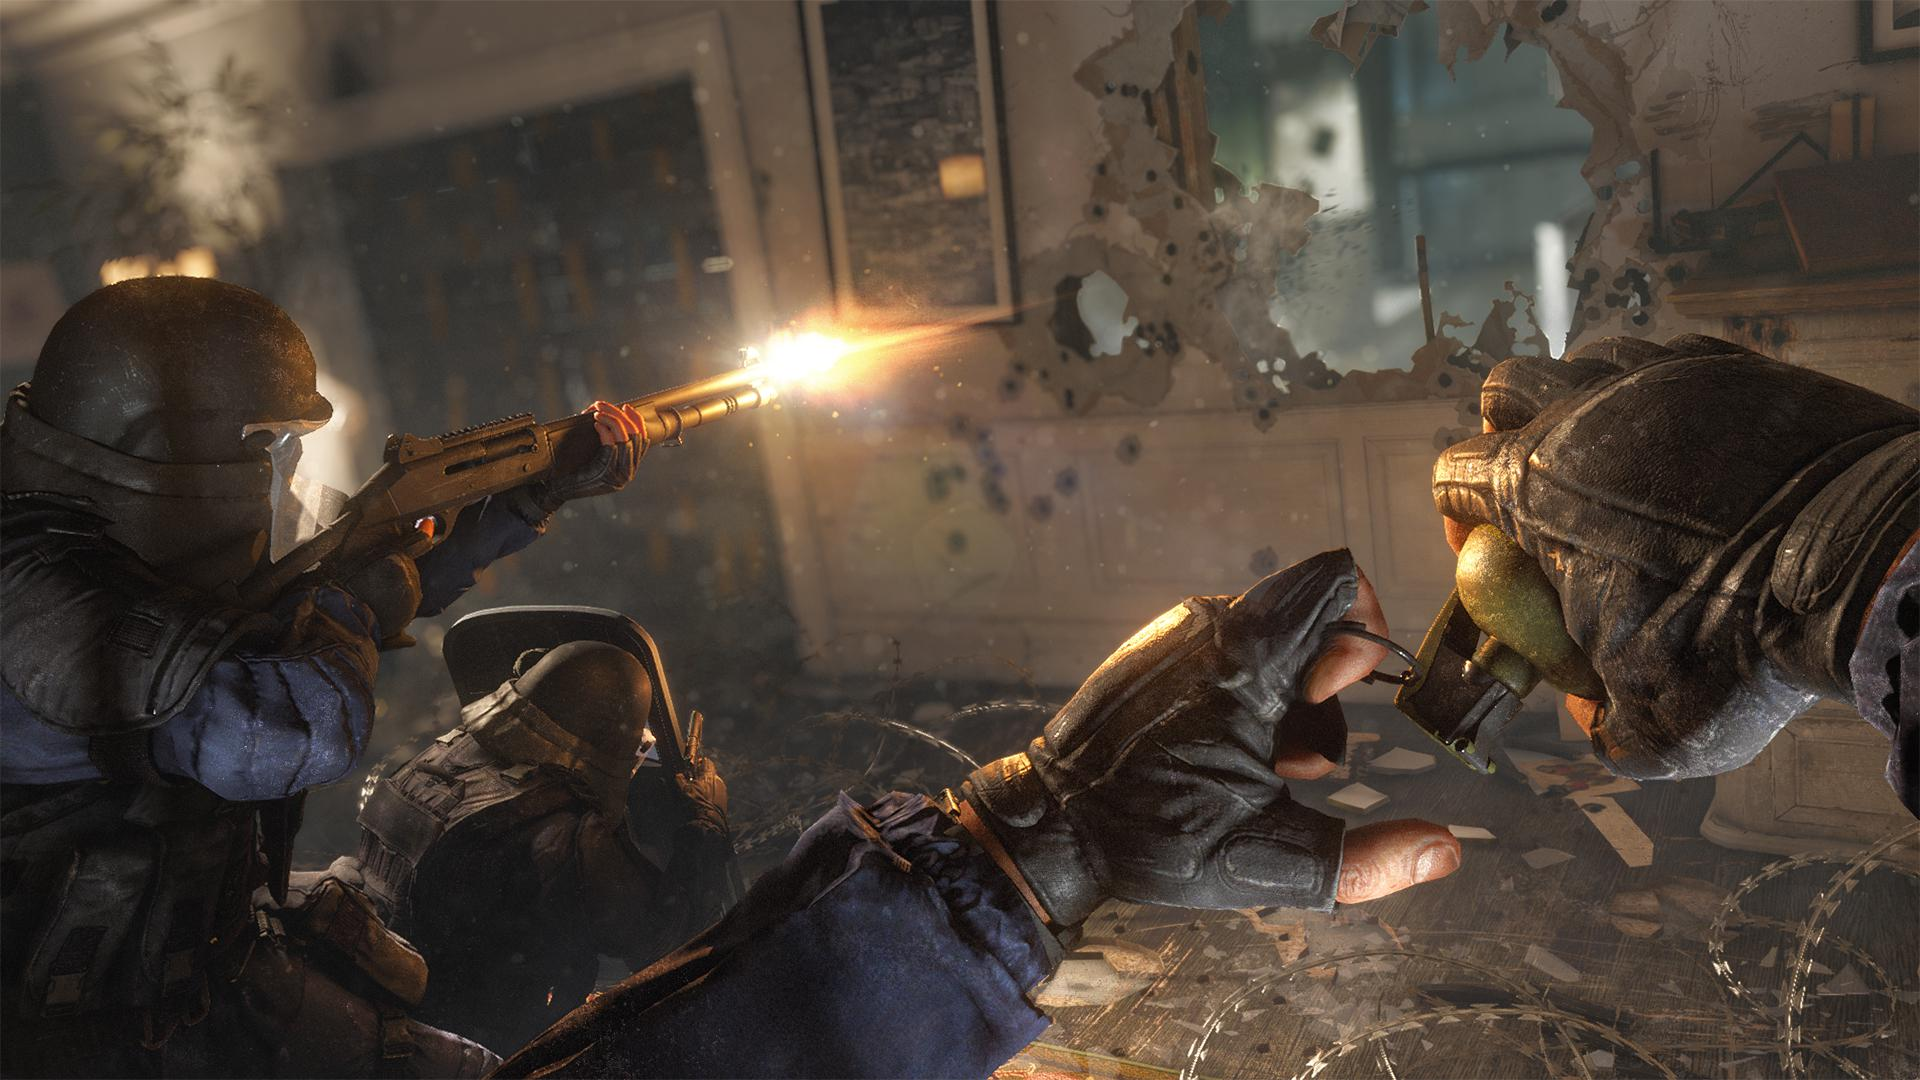 Rainbow 6 has been a surprise hit for developers Ubisoft, who keep updating the game every few months